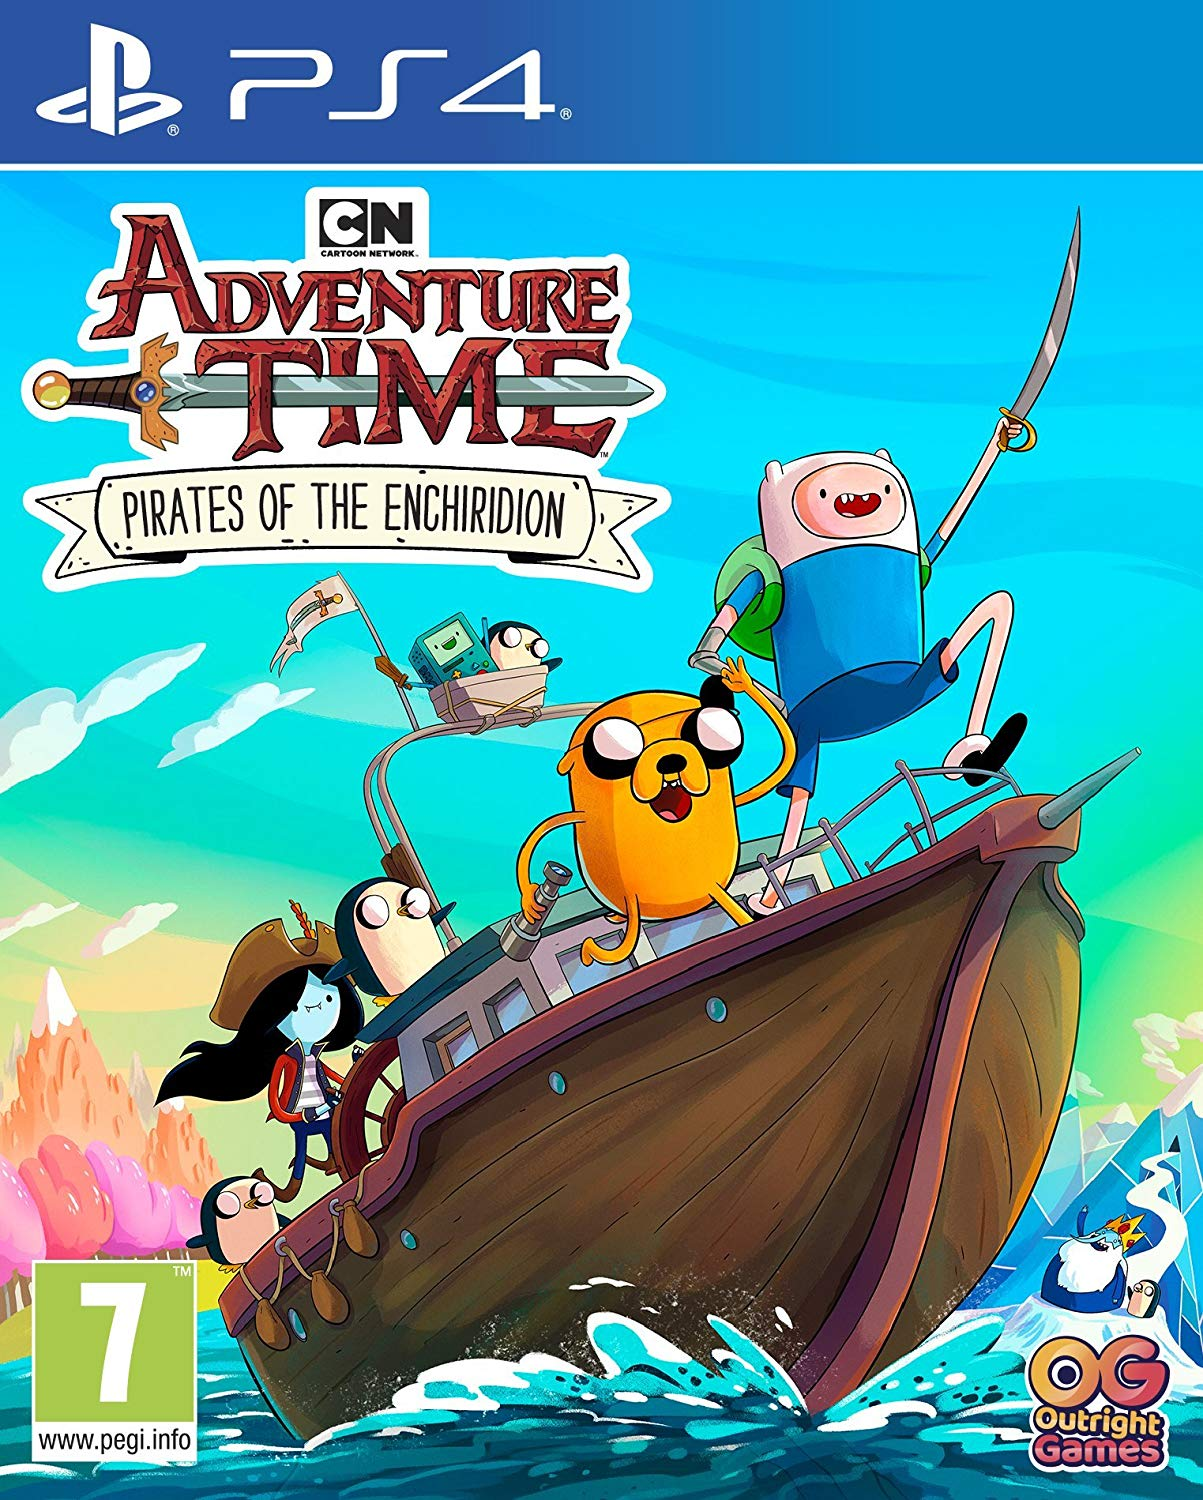 Adventure Time Pirates of The Enchiridion PS4, PS4, DVDMEGASTORE, DVDMEGASTORE